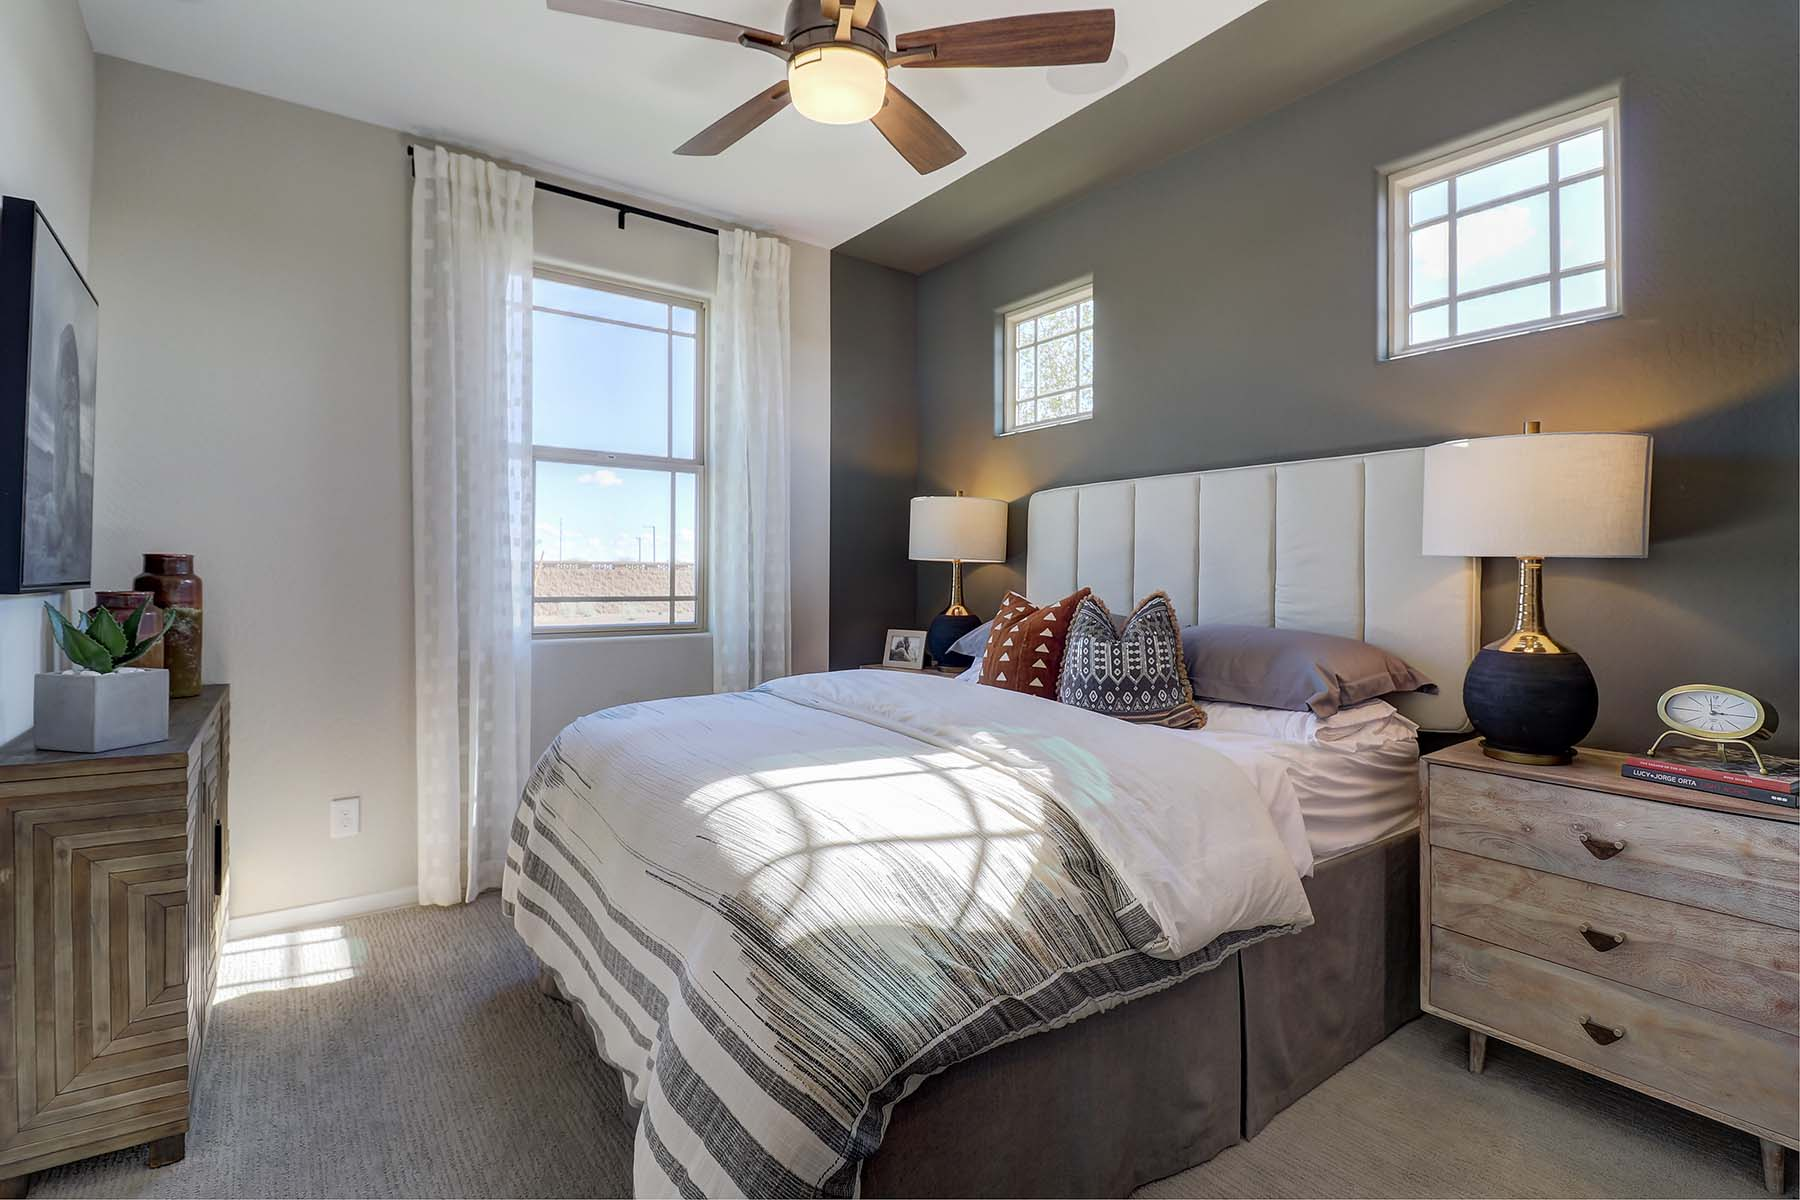 Elwood Plan Bedroom at Crestwood at Canyon Trails in Goodyear Arizona by Mattamy Homes